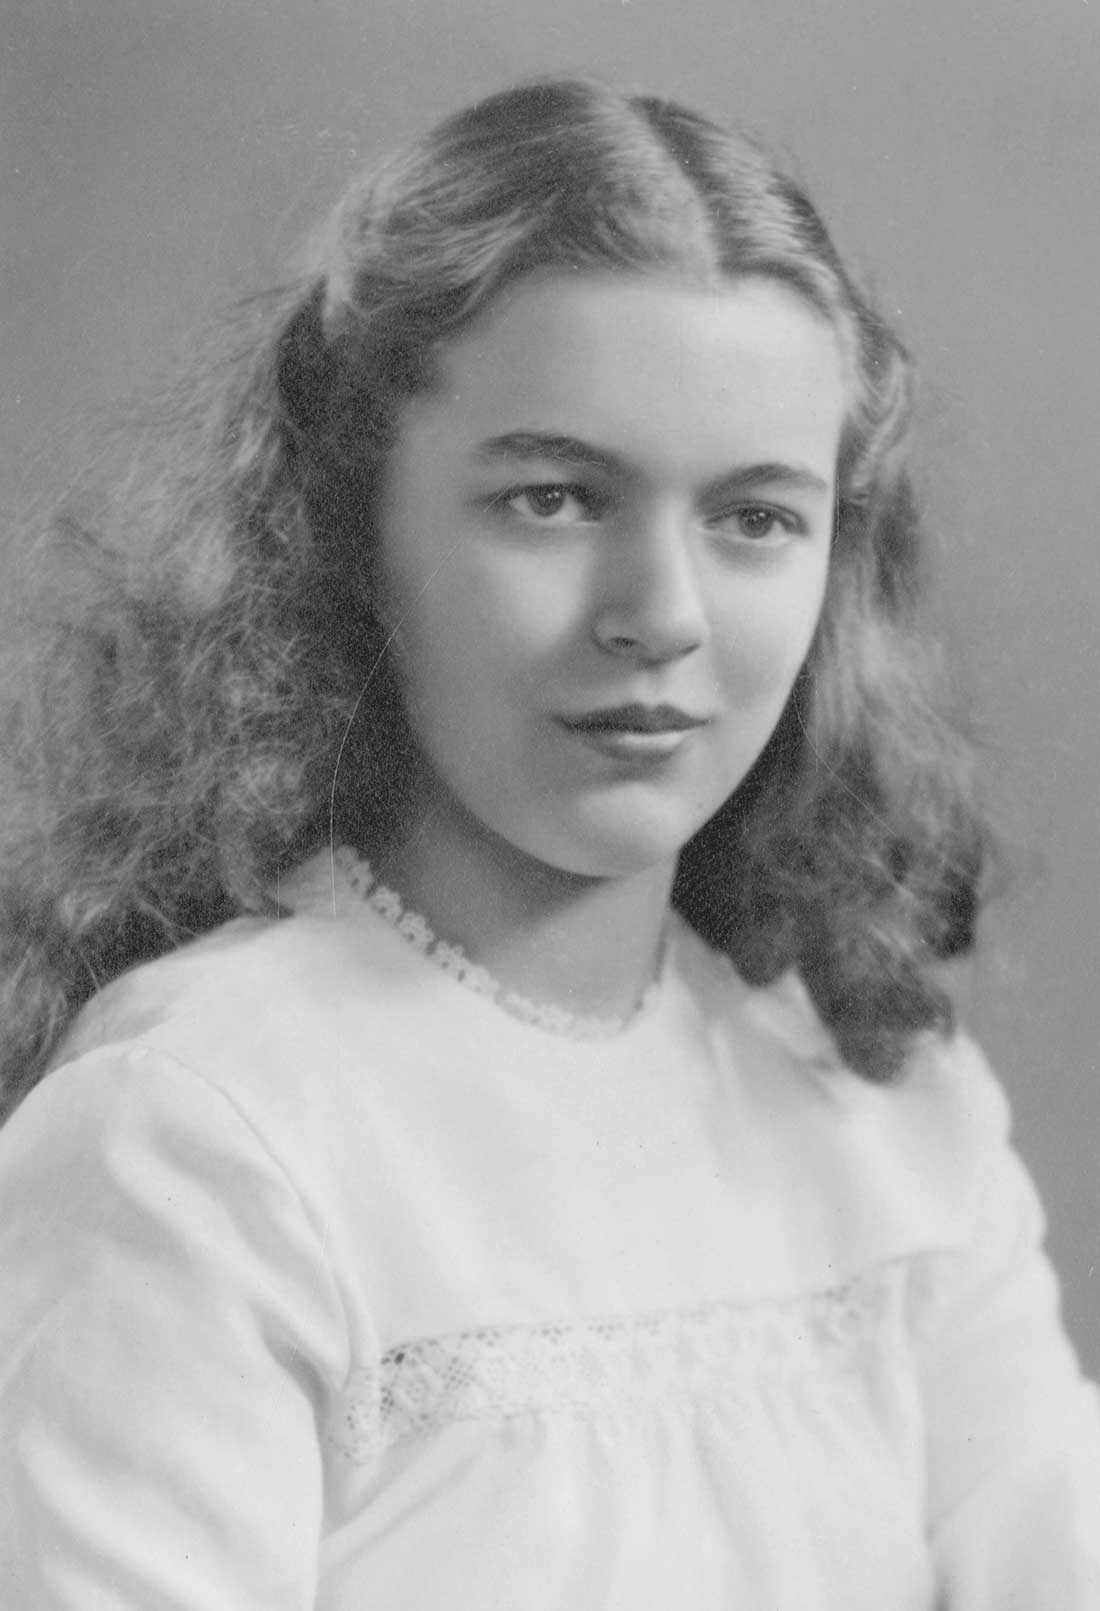 black and white portrait photo of a girl